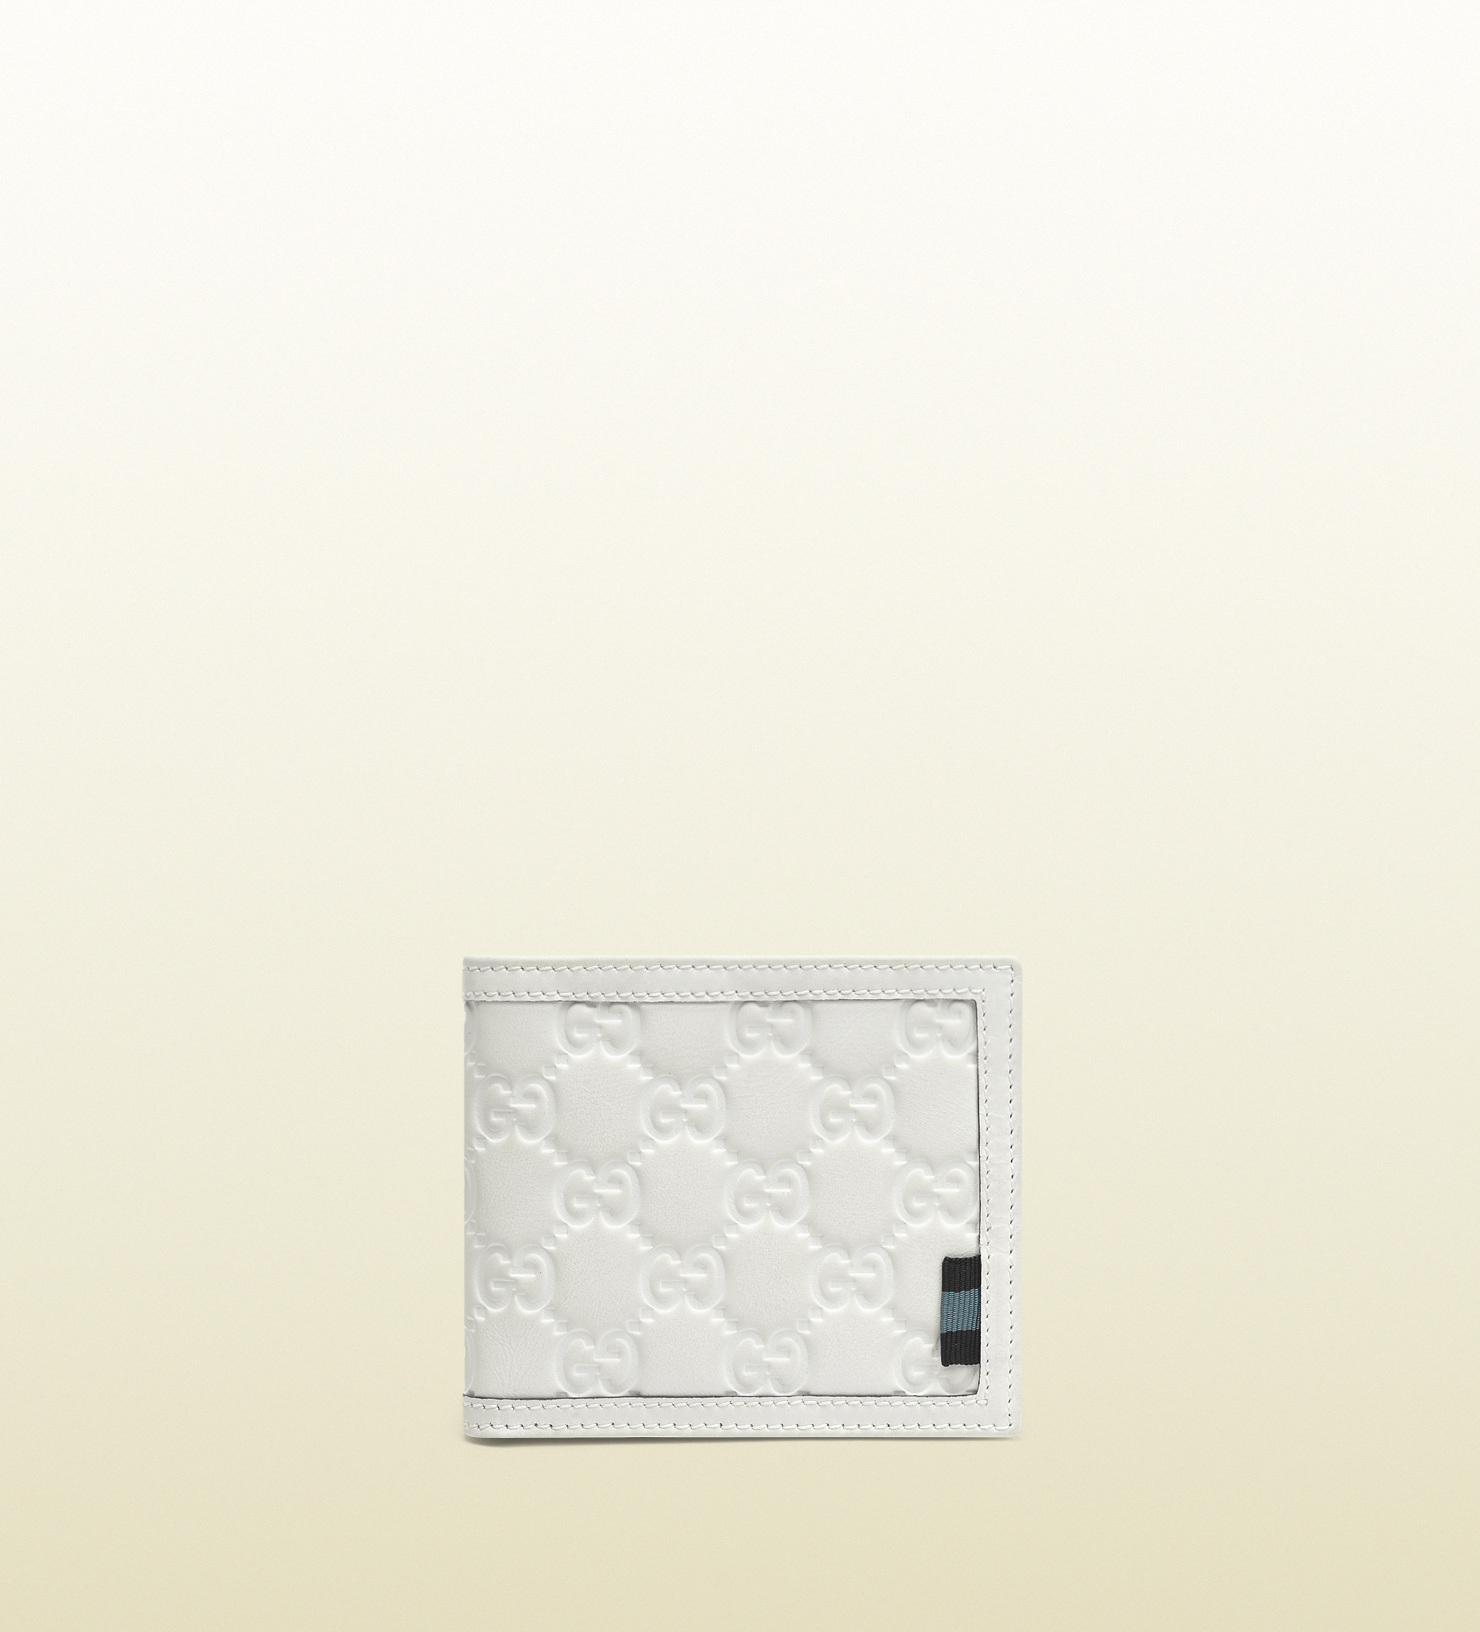 Lyst - Gucci Rubber Ssima Leather Bifold Wallet in White ...